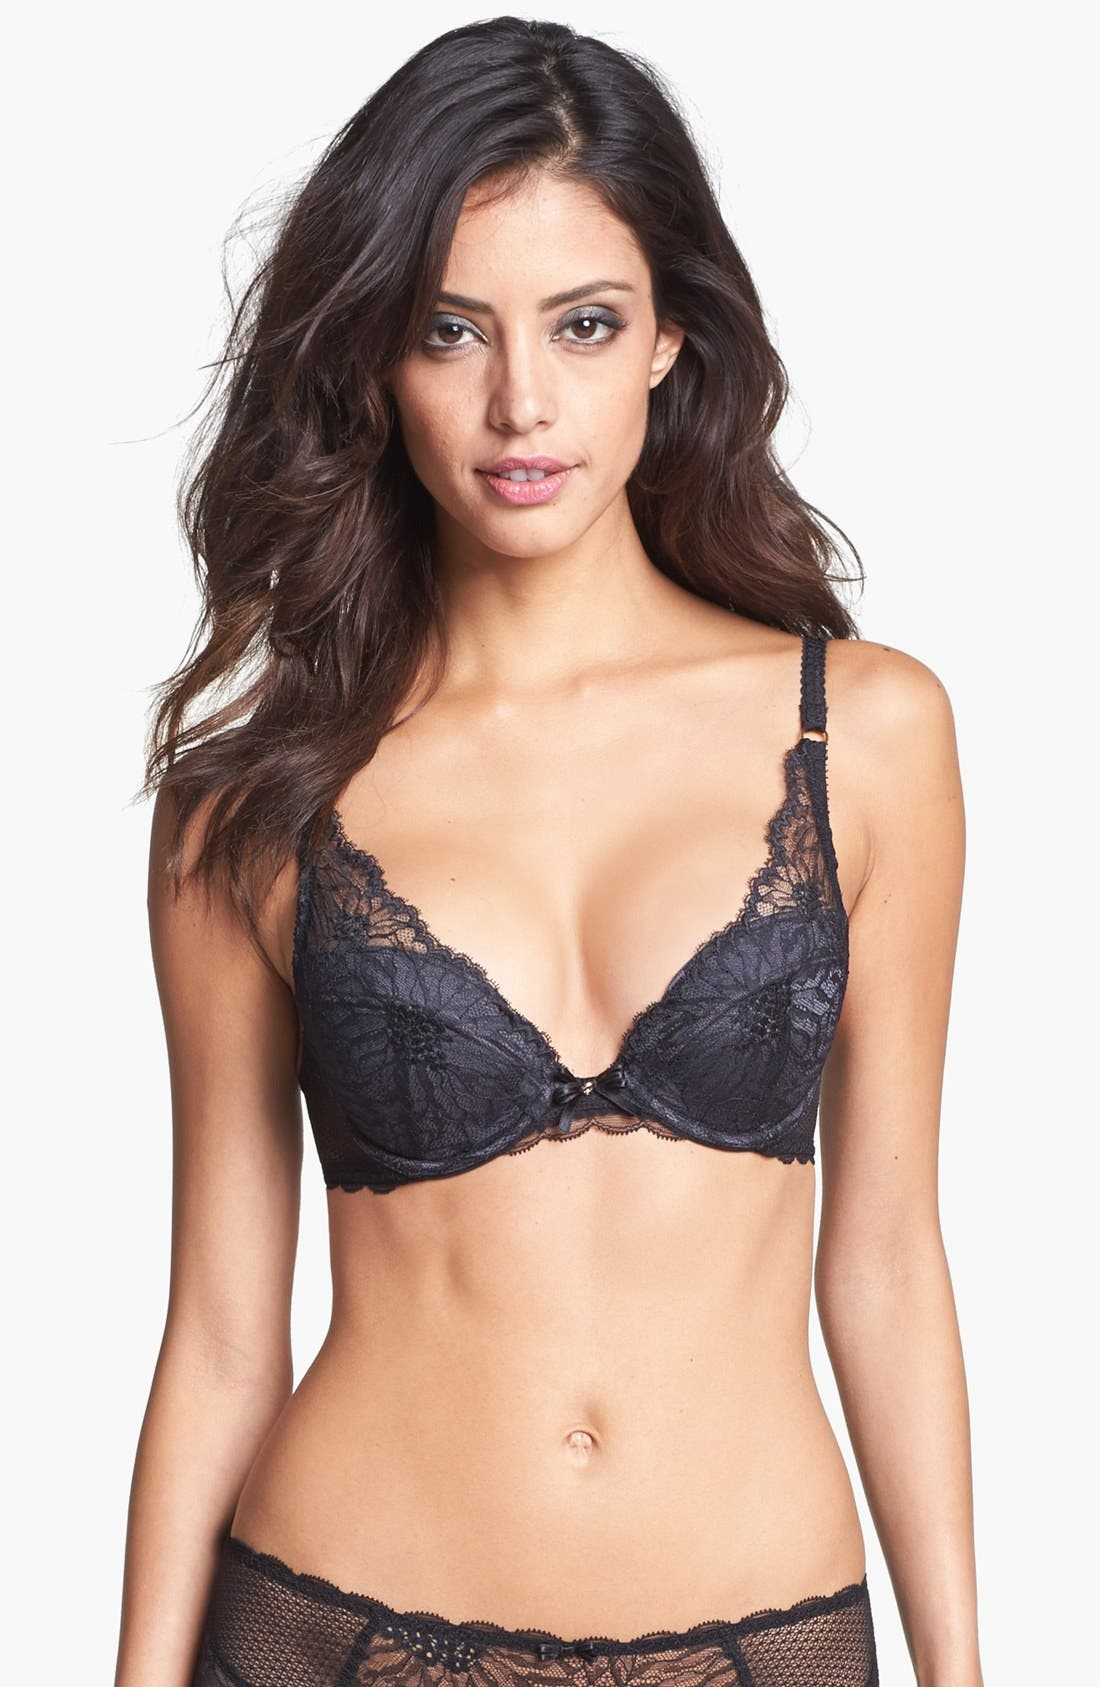 Alternate Image 1 Selected - Chantelle Intimates 'Opera' Underwire Push-Up Bra